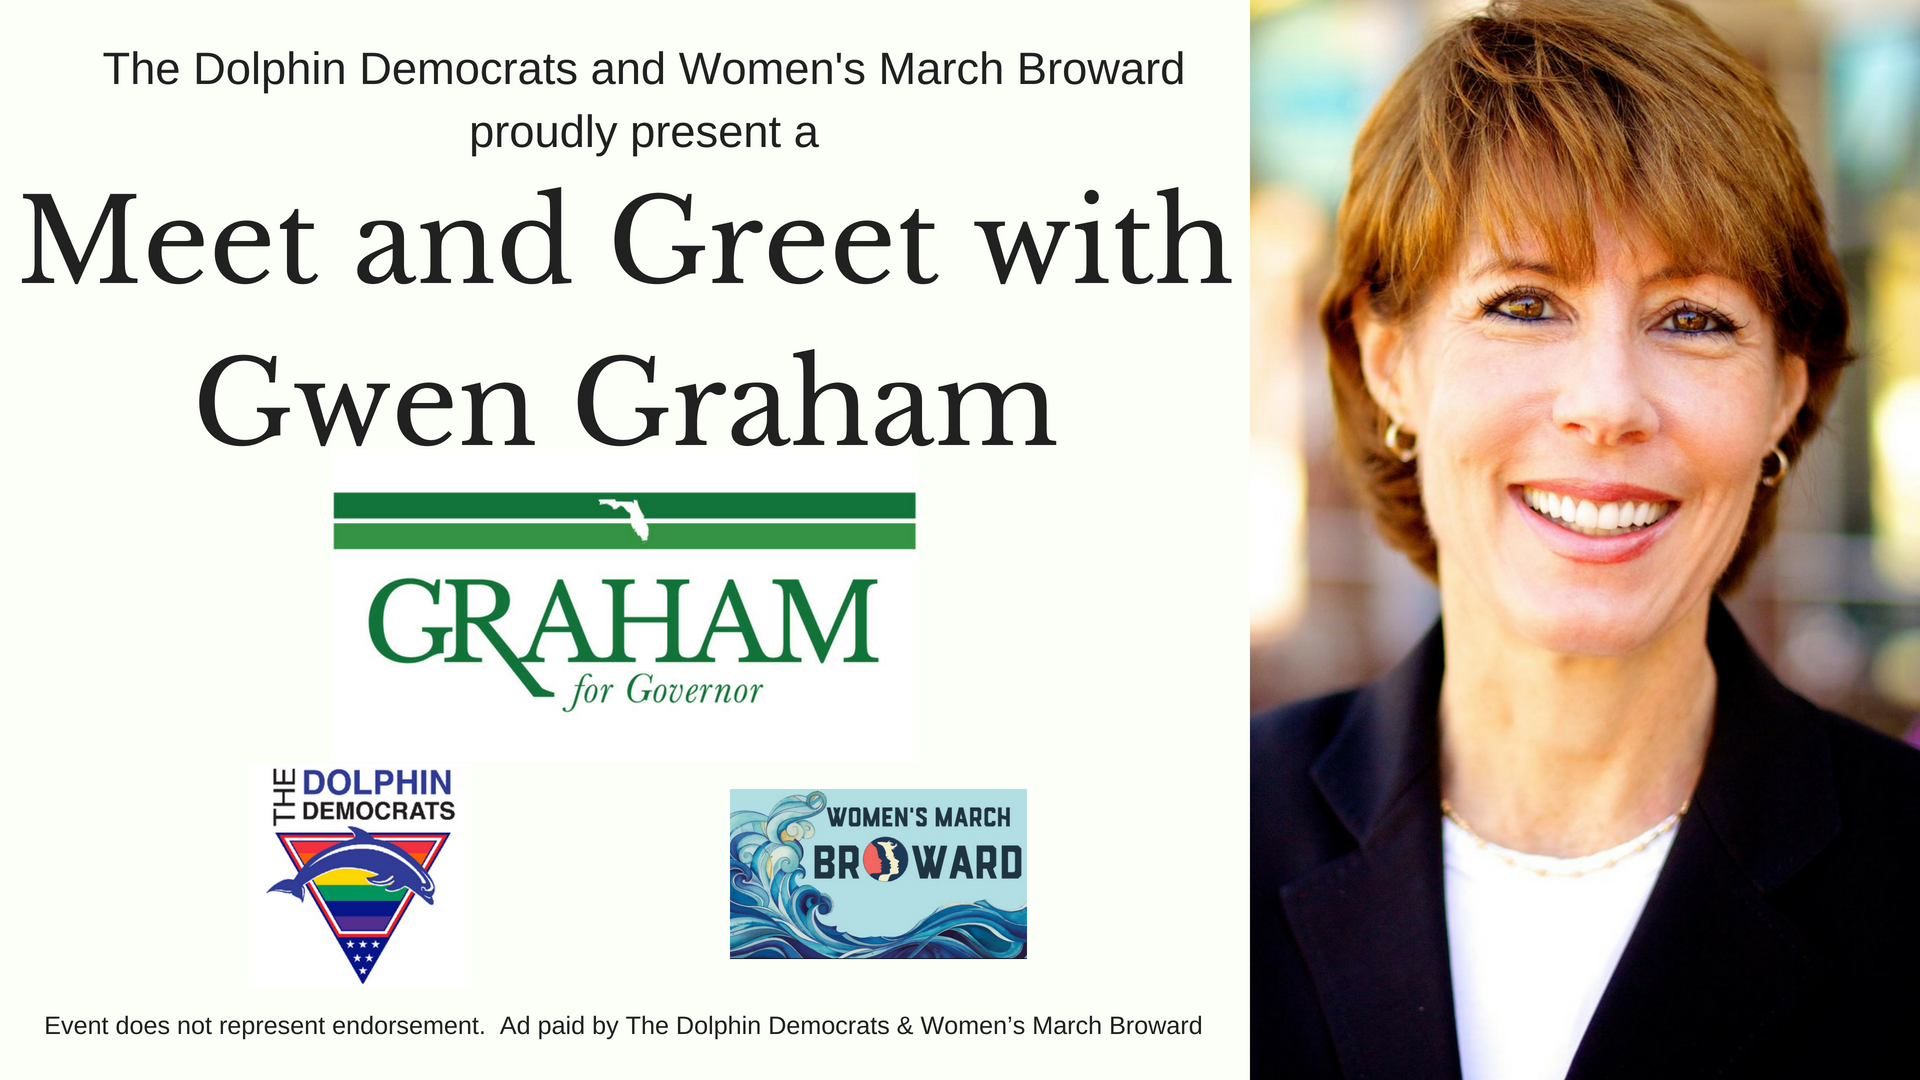 5-30-2018: Meet and Greet with Gwen Graham - The Dolphin Democrats & The Women's March - Broward Chapterproudly present a Meet & Greet with Gwen Graham for Governor. Come and take advantage of this unique opportunity to meet the candidate before the primary election.Wednesday, May 30, 20185:30pm - 7:00pmSea & Olive Wilton ManorsThis event is paid for and organized by the Dolphin Democrats and The Women's March - Broward Chapter and does not represent endorsement of the candidate.